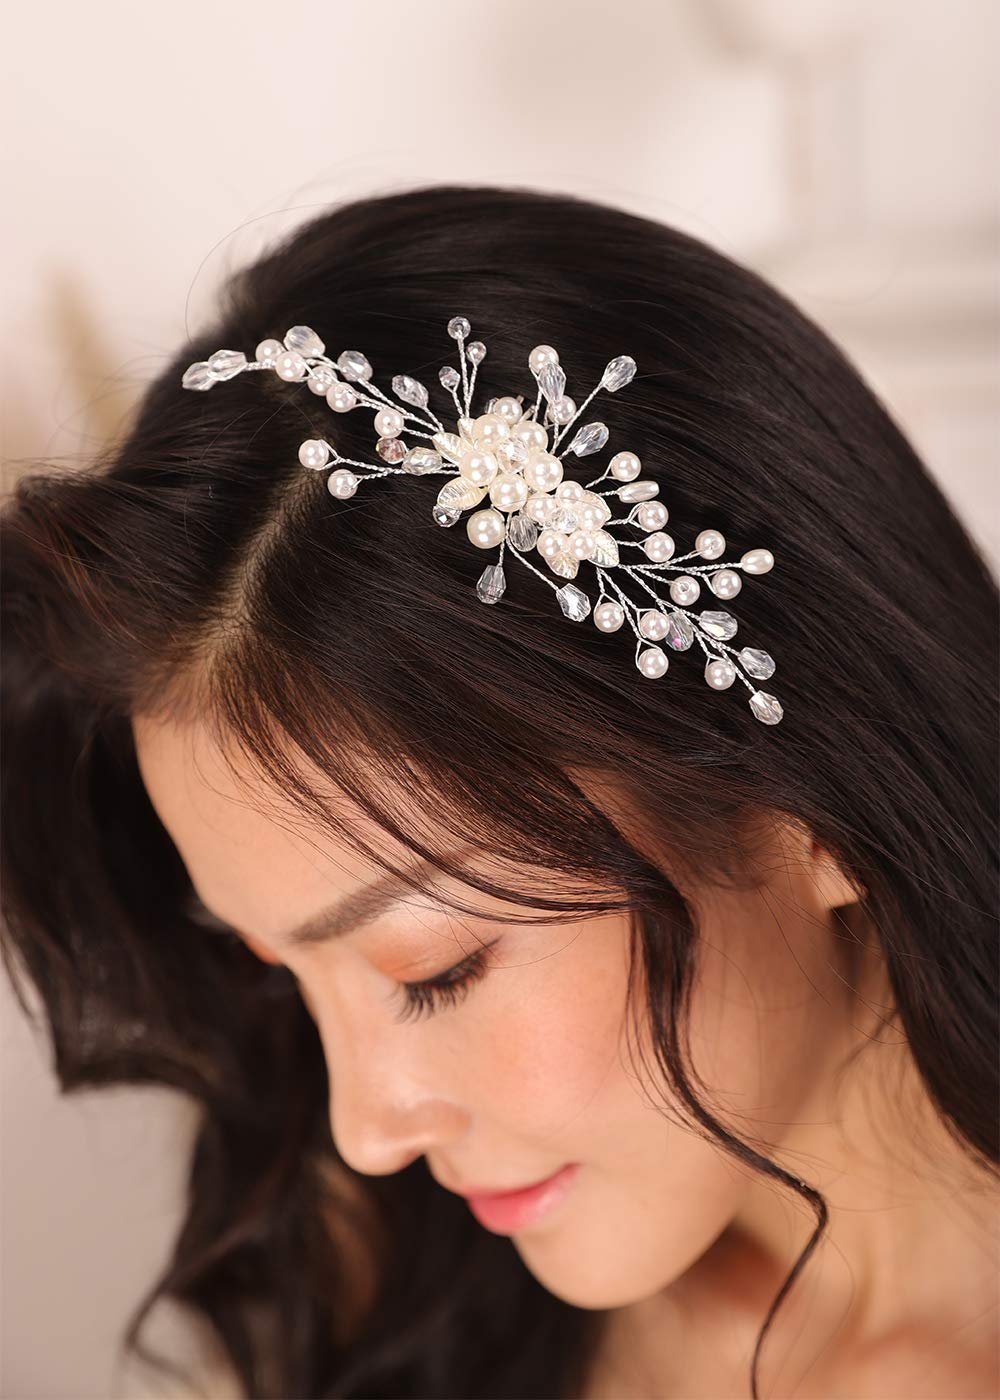 Kercisbeauty Lightweight Hair Comb for Women and Girls Pearl Hair Piece Side Combs for Brides Bridesmaid Flower Girls Boho Jewelry